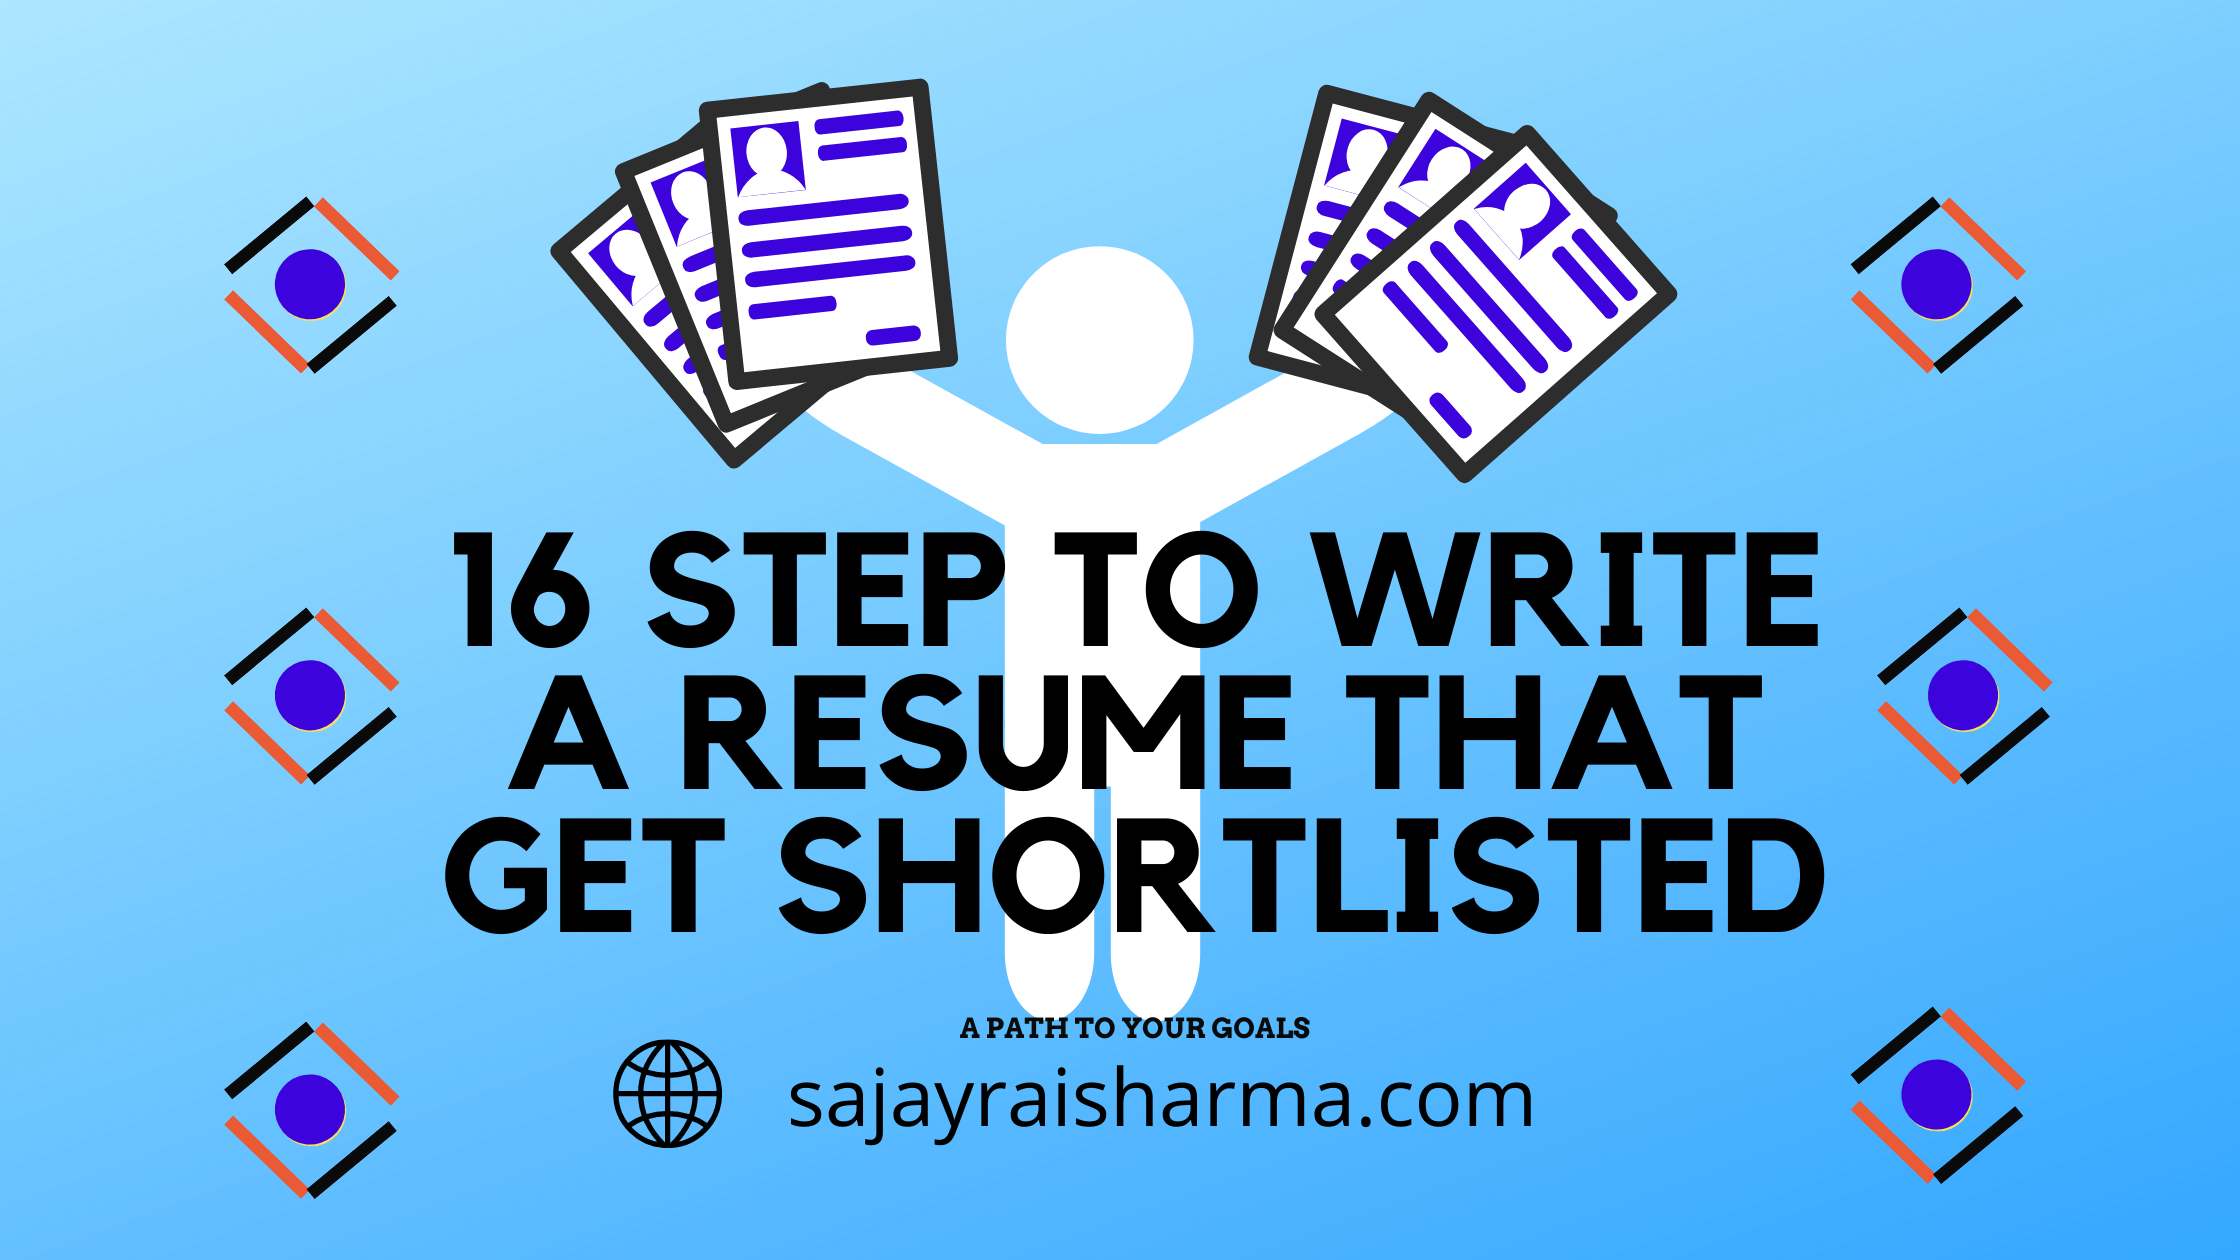 16 steps to write a resume that get shortlisted